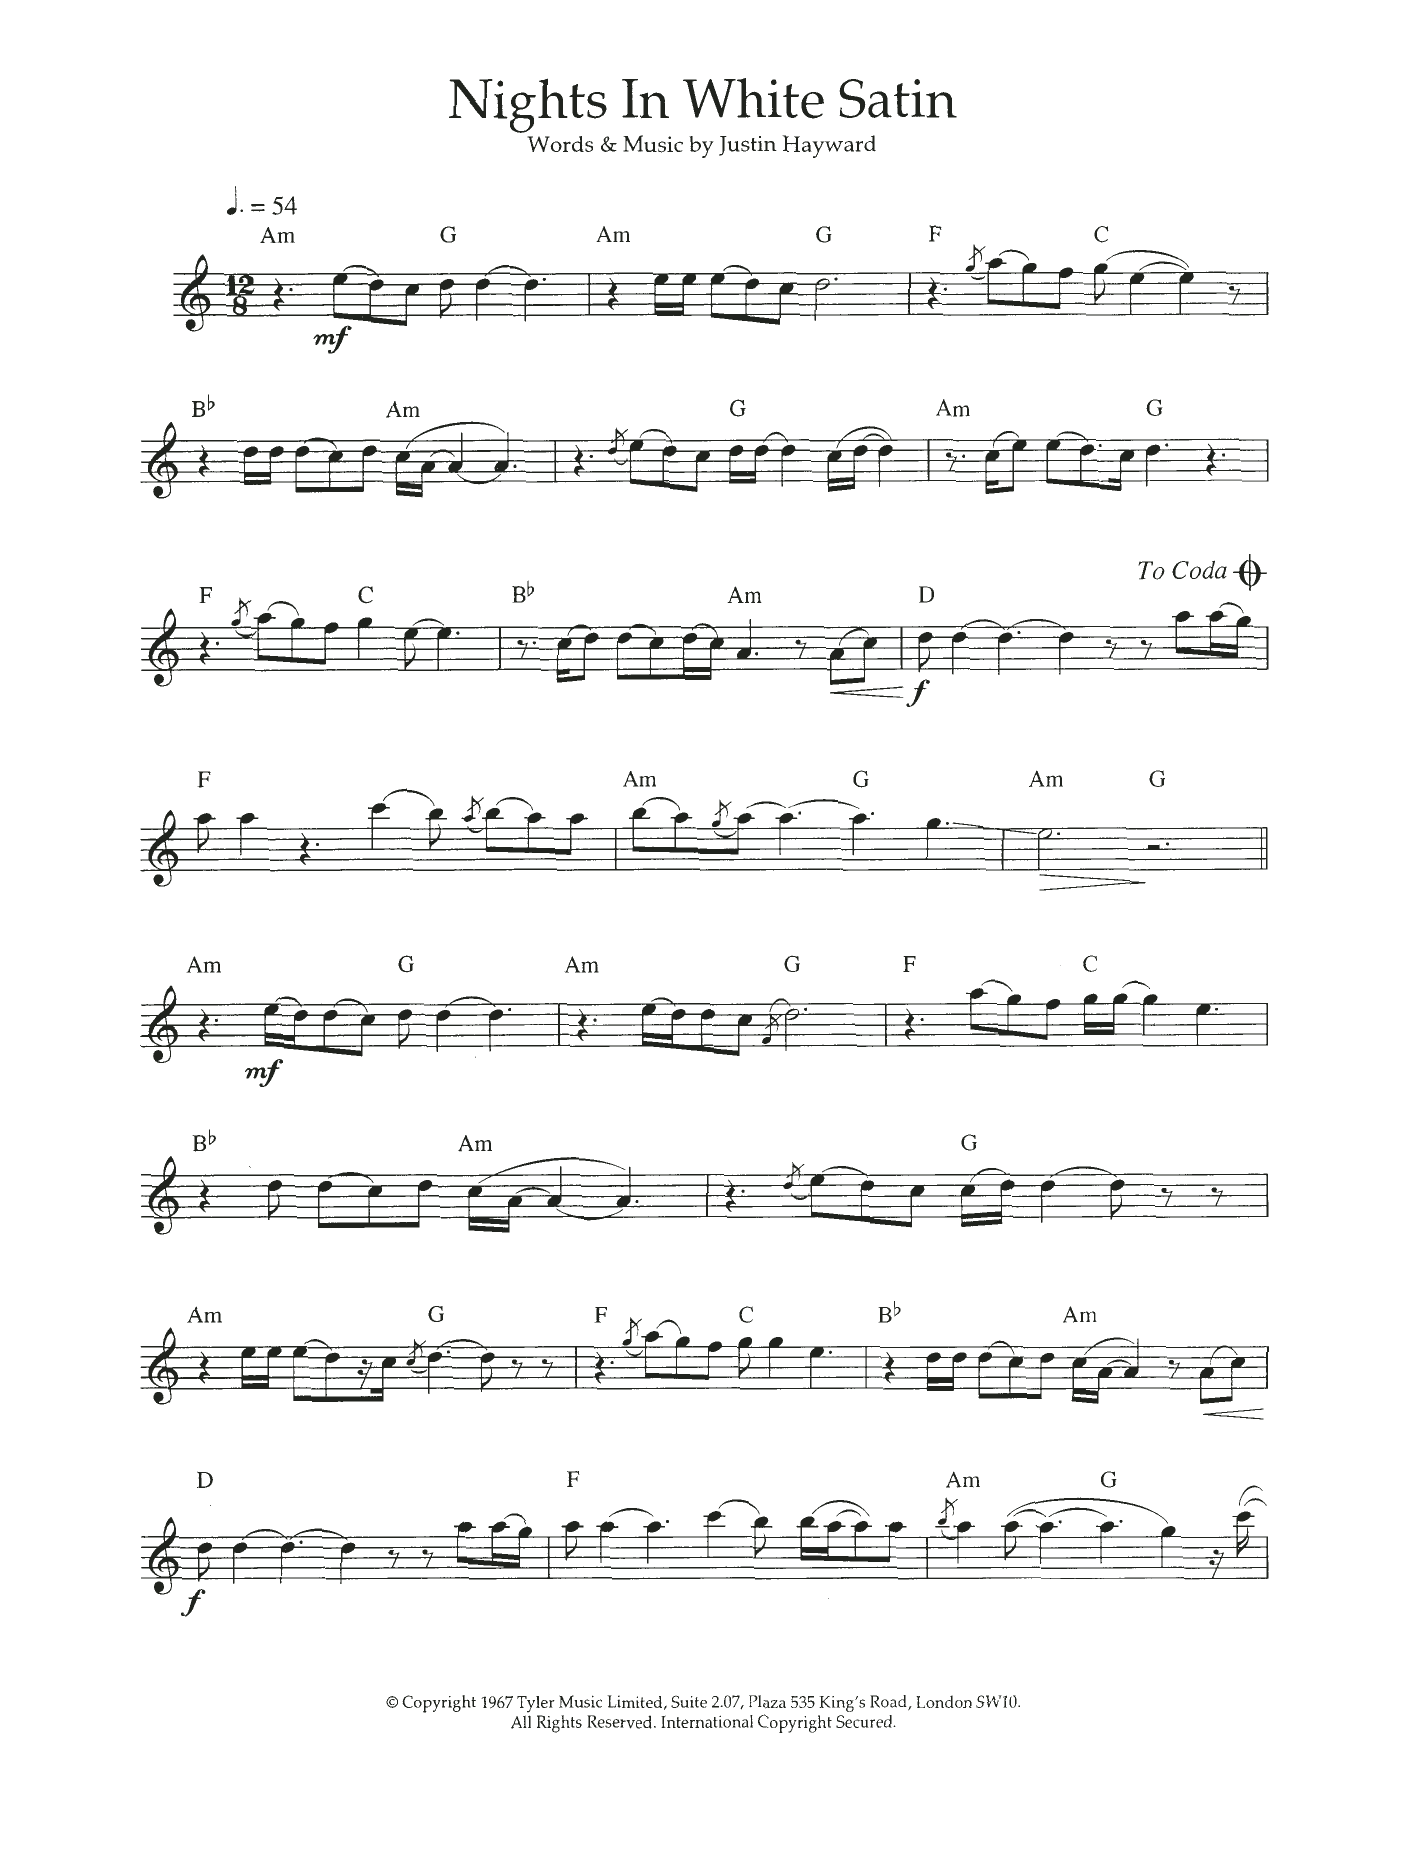 Nights In White Satin Sheet Music